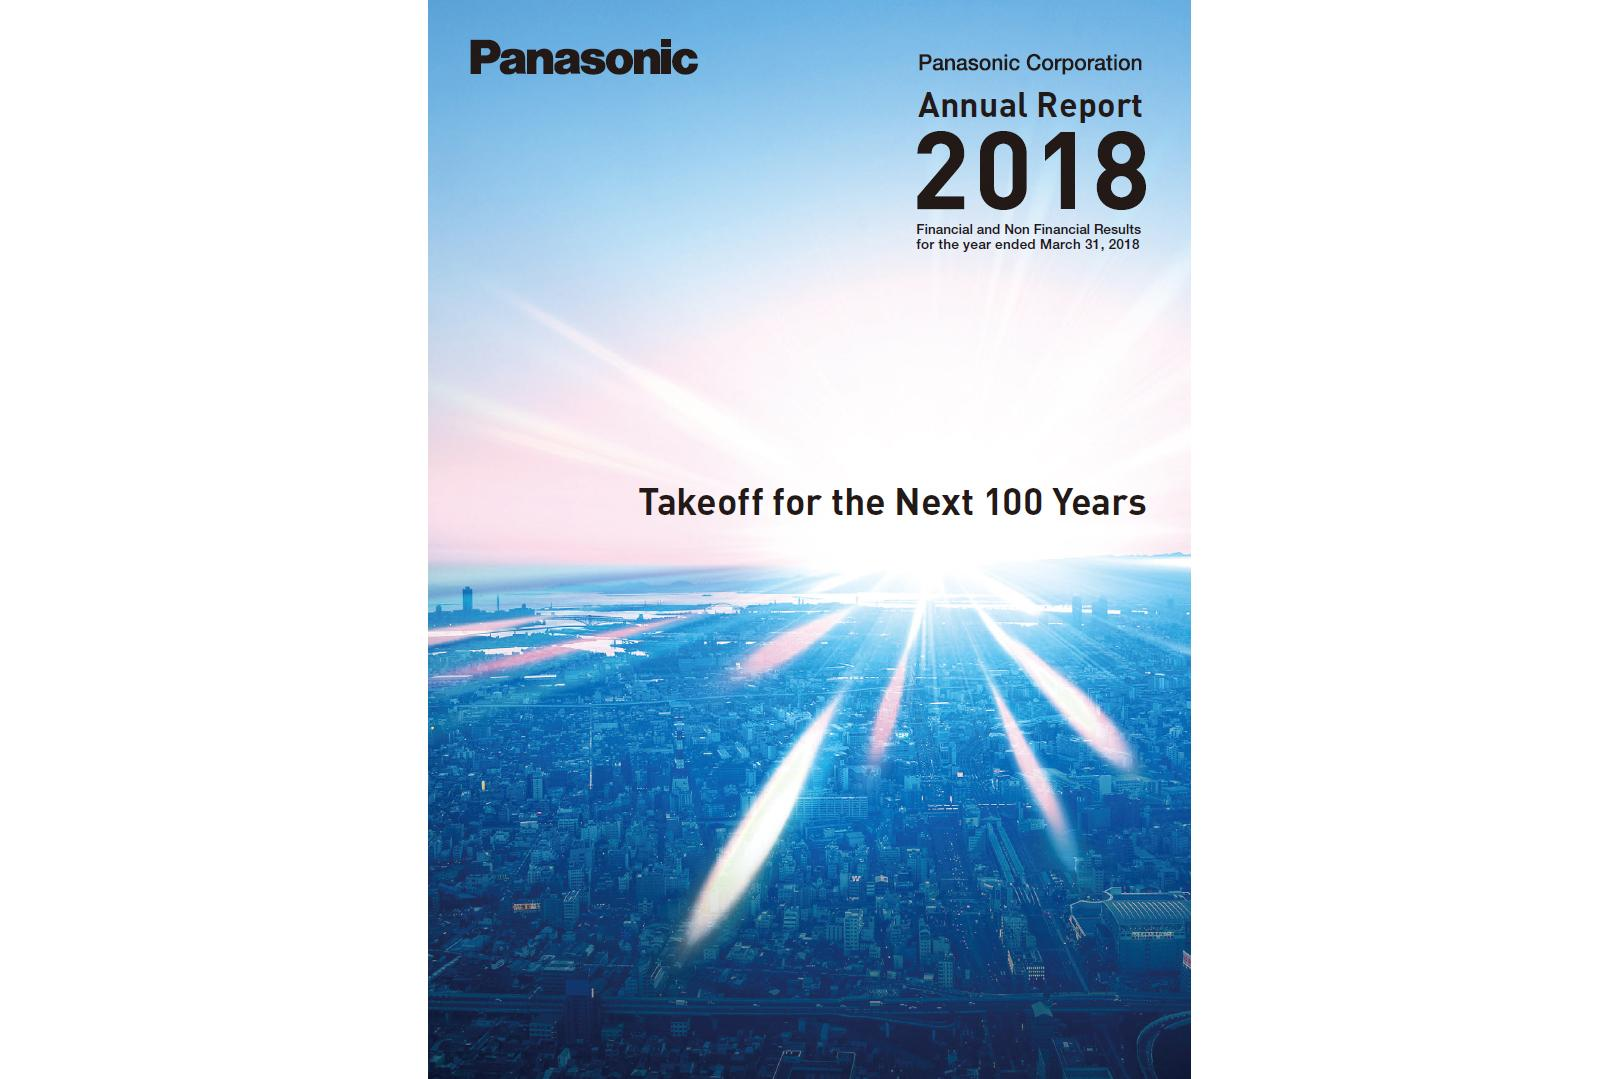 image: Panasonic Annual Report 2018